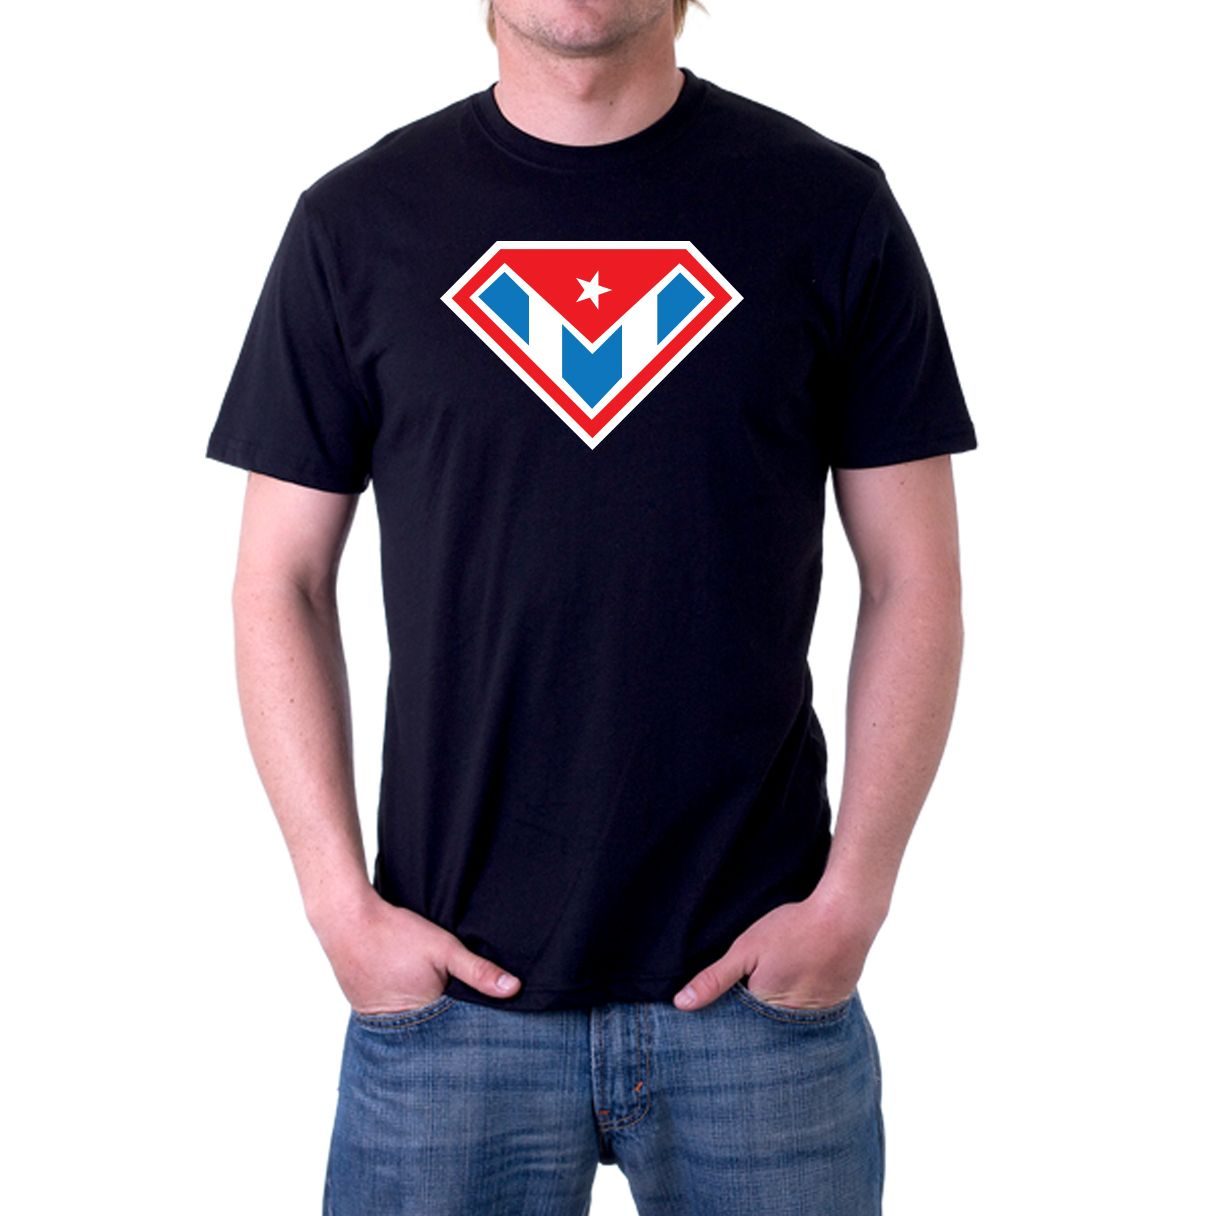 A graphic tee featuring a high quality commercial grade printing, superman parody with the cuban flag on his chest. Unisex Adult T-shirt. All our shirts are high quality, 100% cotton    This t-shirt is part of our ★ ★ ★ ★ COMICS  COLLECTION ★ ★ ★ ★     ========================  T-SHIRT AVAILABLE ...